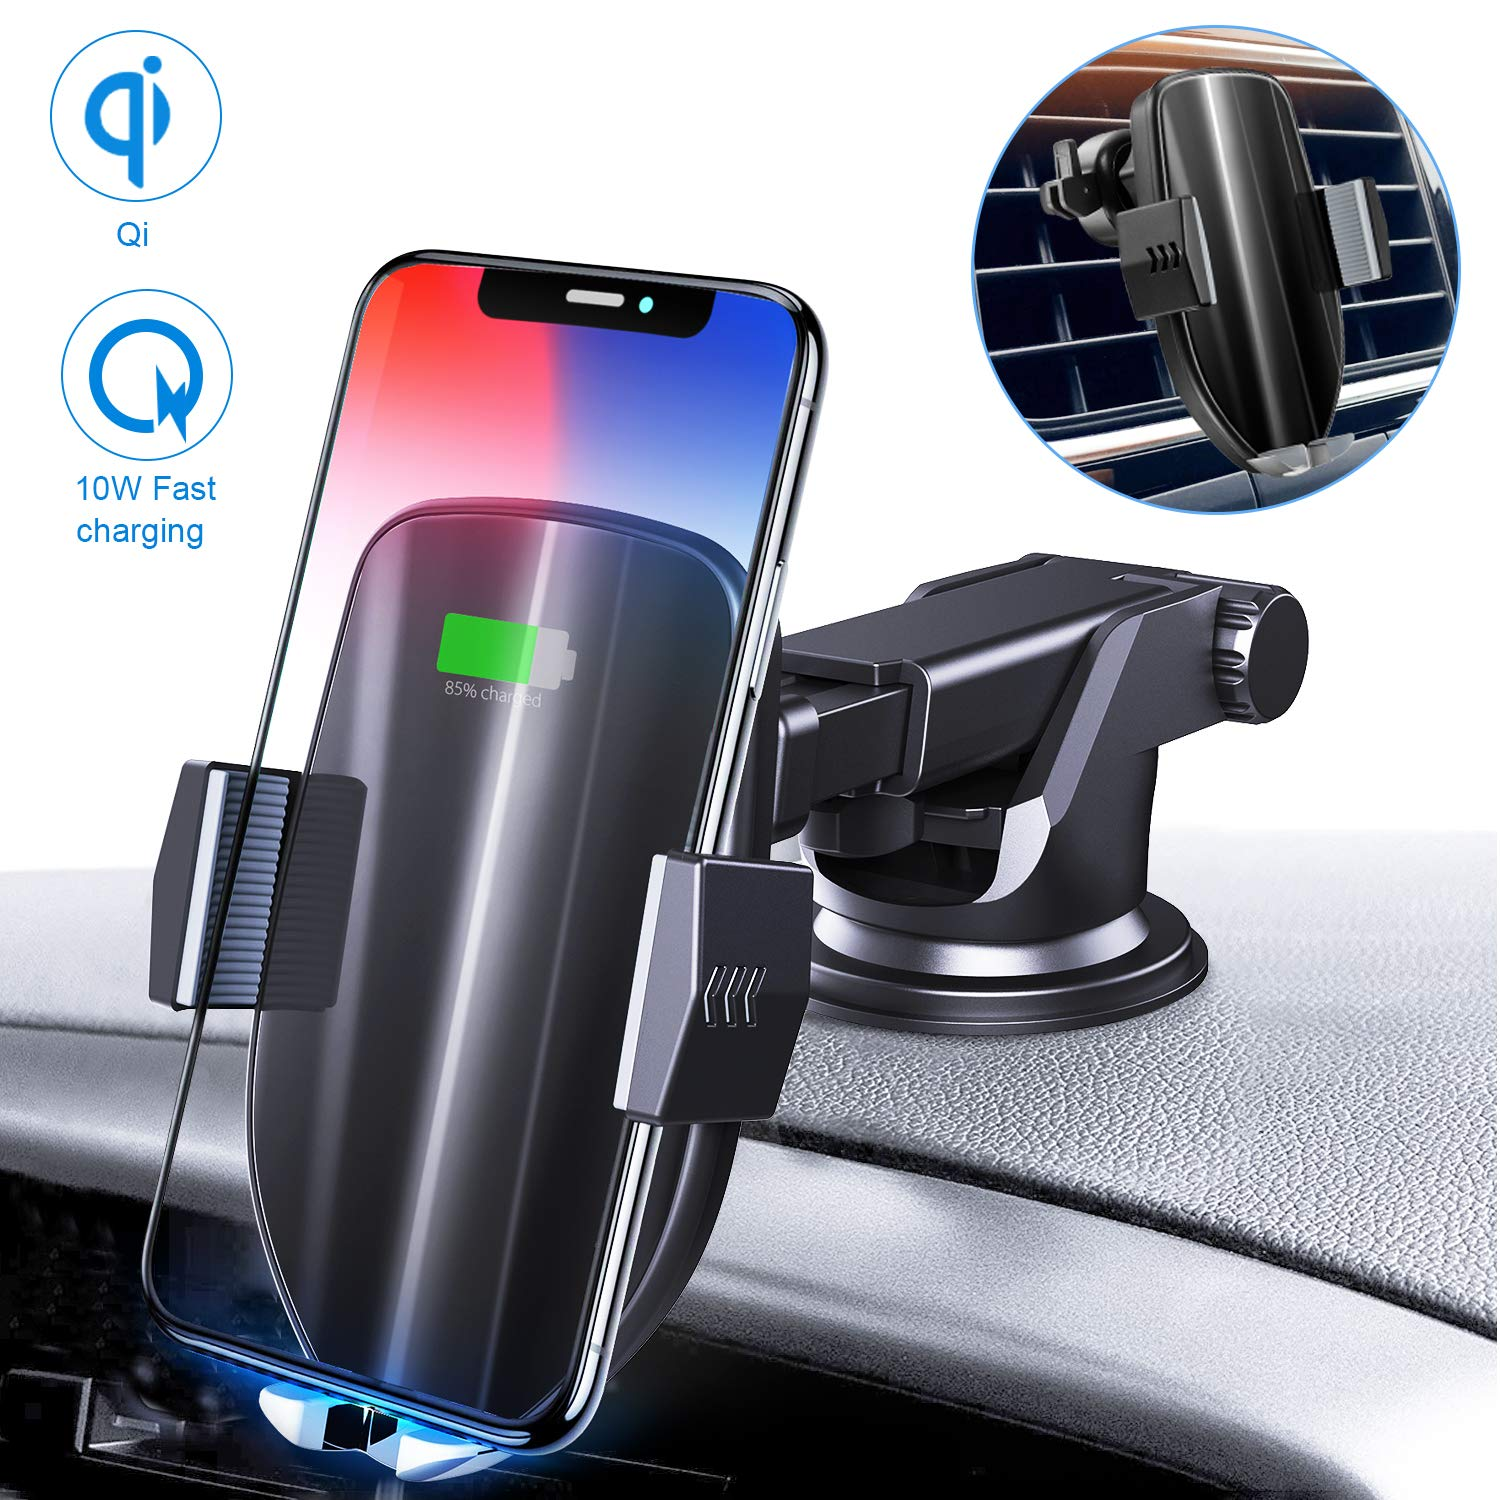 Moskee Wireless Car Charger Mount,Automatic Clamping,Qi 10W 7.5W Fast Charging,Air Vent Phone Holder Compatible with iPhone Xs/Xs Max/XR/X/8/8 Plus, Miyababy Samsung Galaxy S10/S10+/S9/S9+/S8/S8+ by Moskee